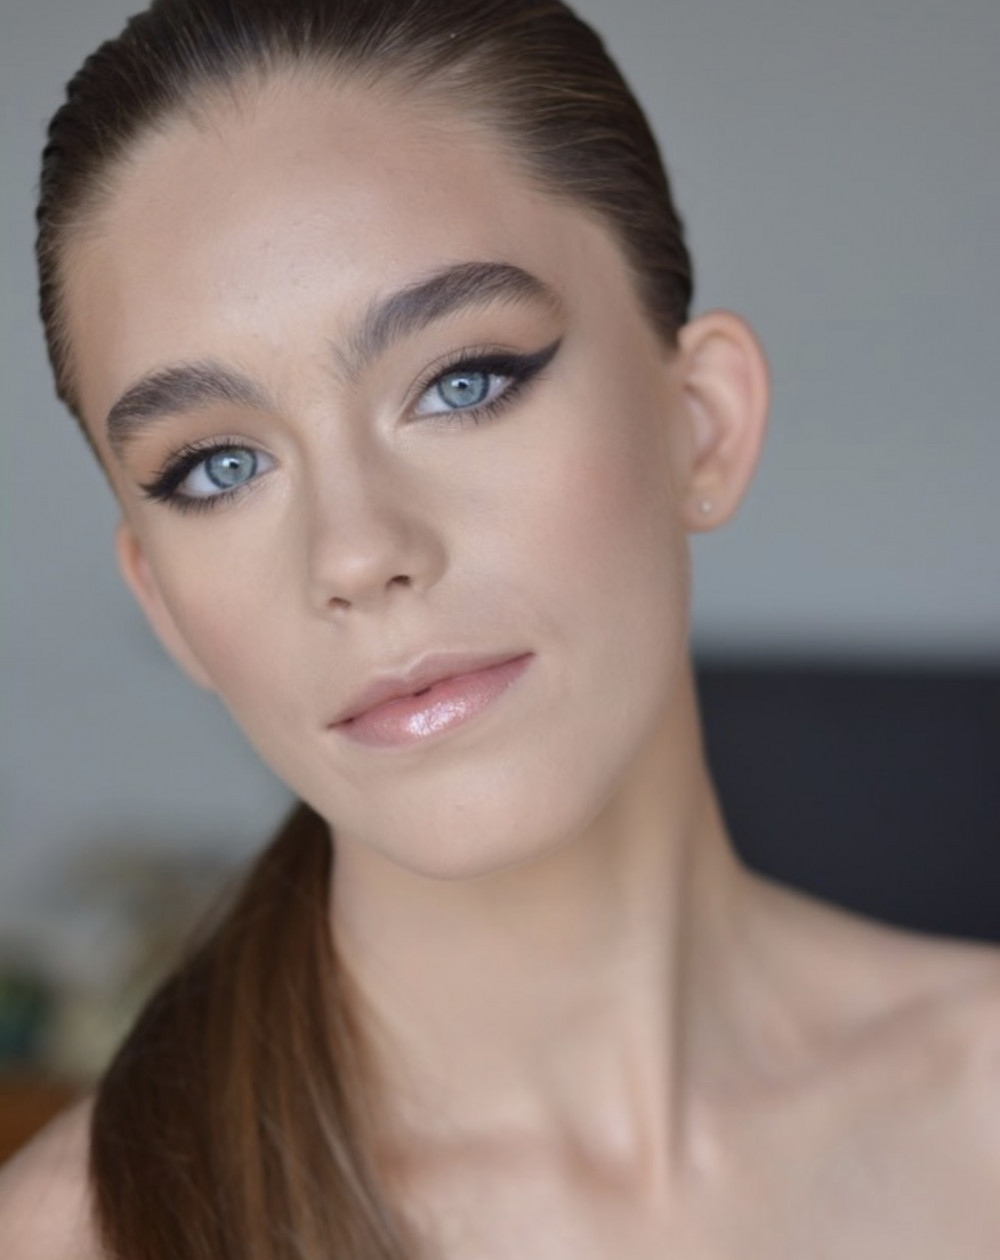 Beautiful bridal makeup with bold winged eyeliner on bride with blue eyes